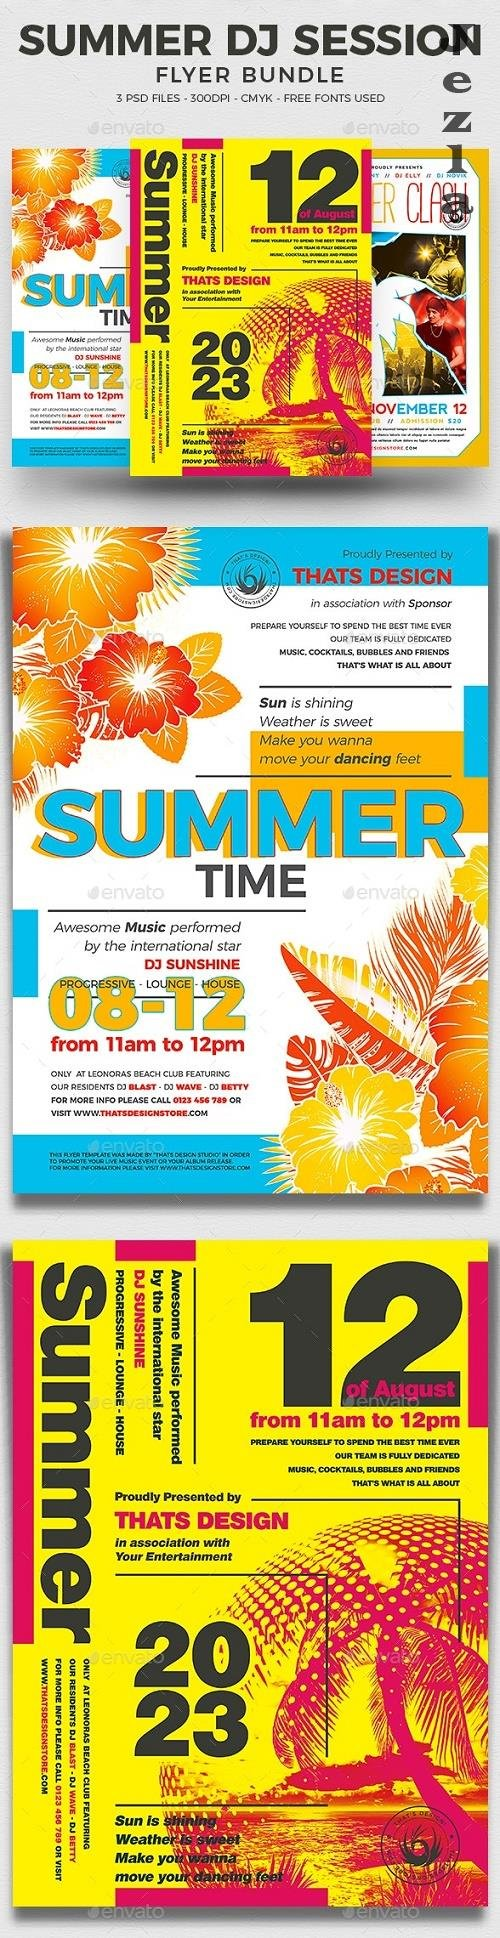 Summer DJ Session Flyer Bundle  - 17219881 - 800787